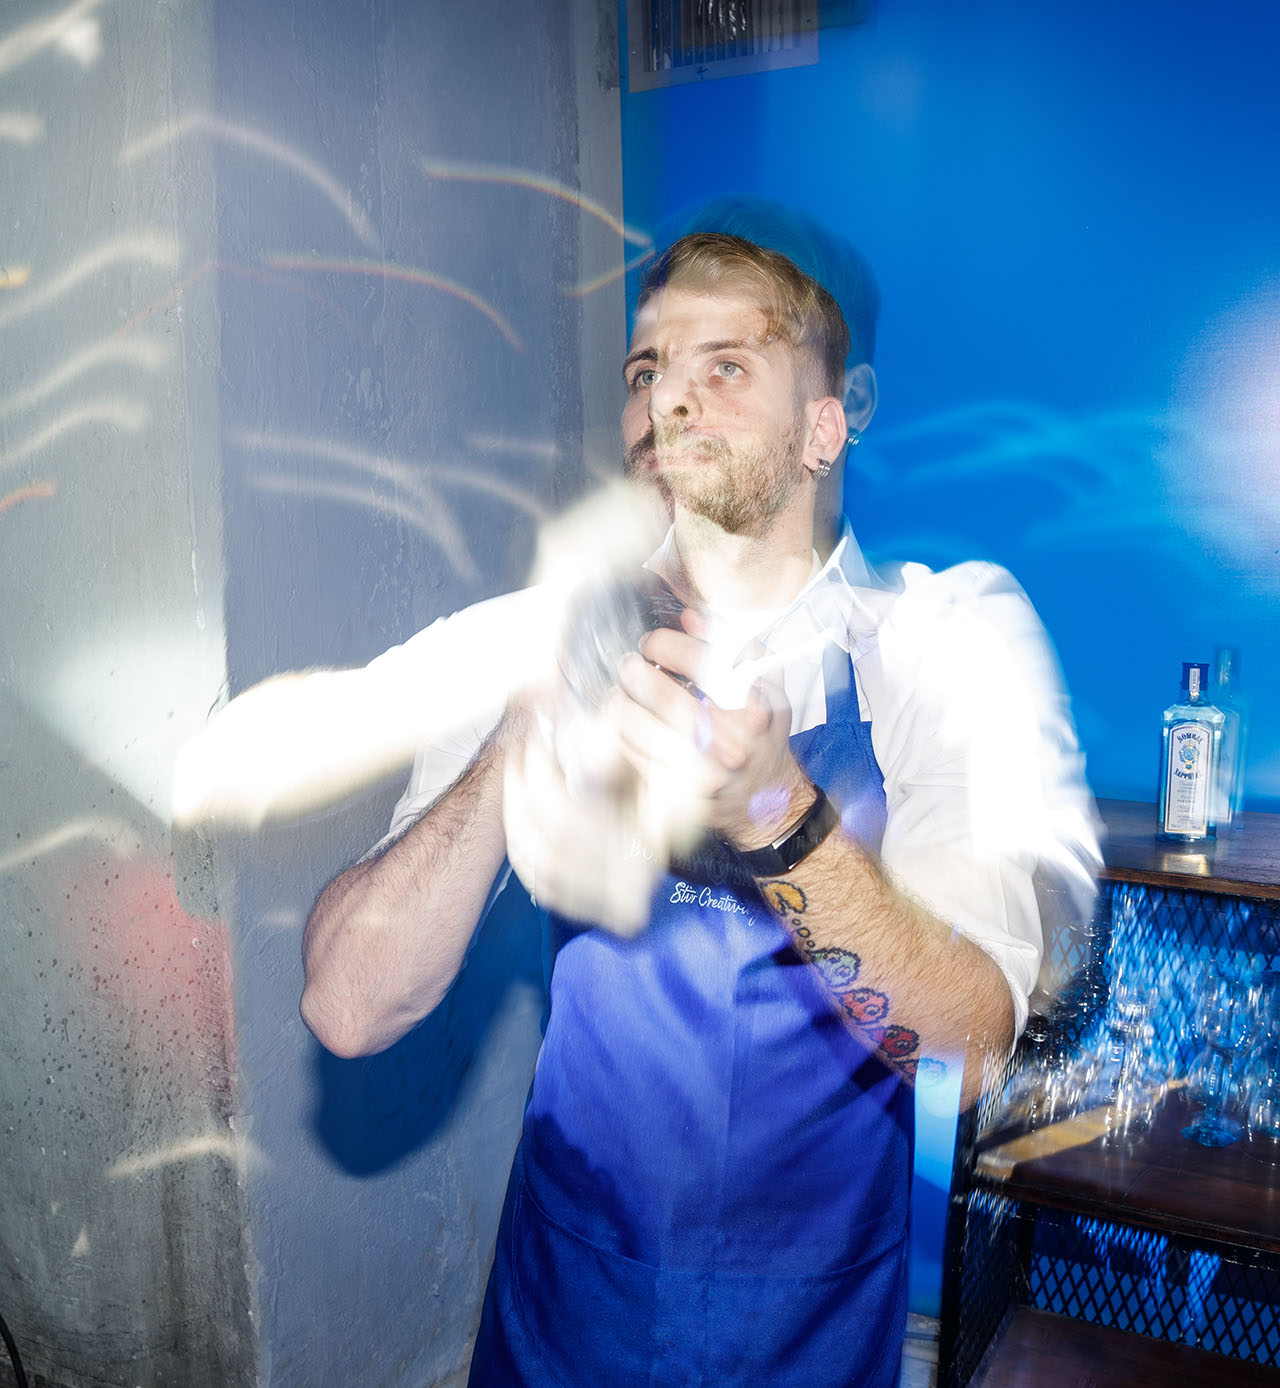 CANVAS event by Bombay Sapphire, Athens, January 2019. Photo by Spyros Chamalis © Yatzer 2019.